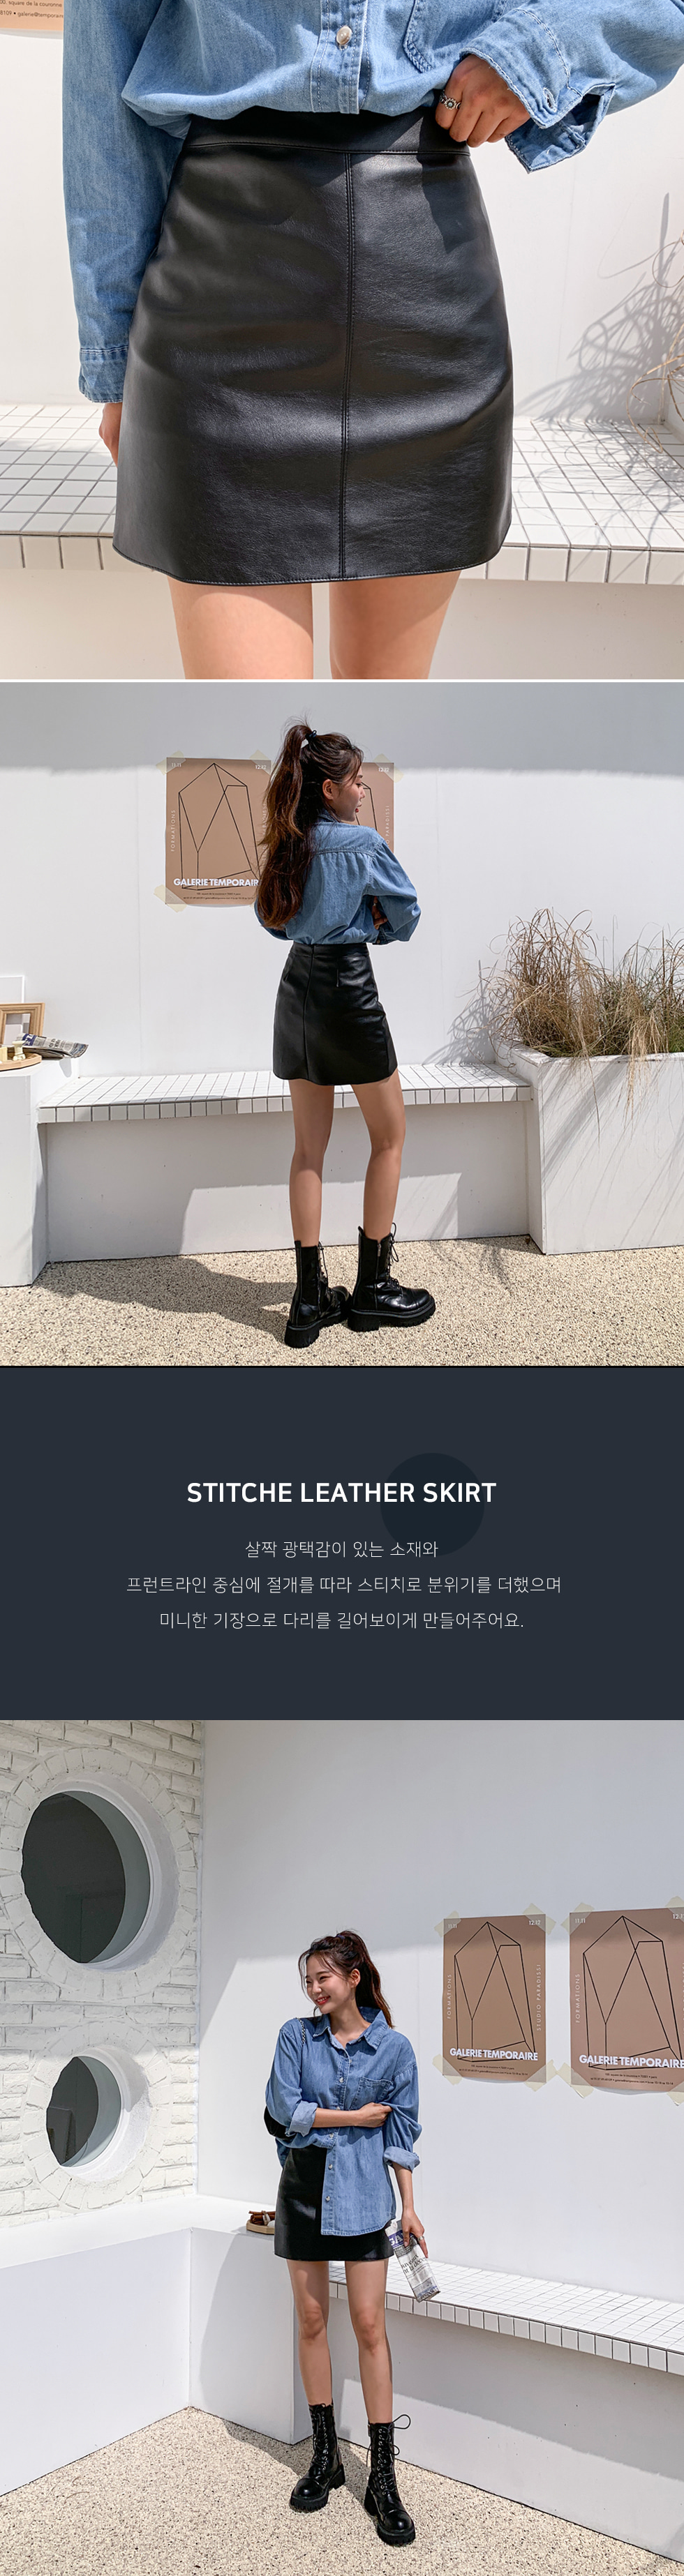 Stitched leather skirt